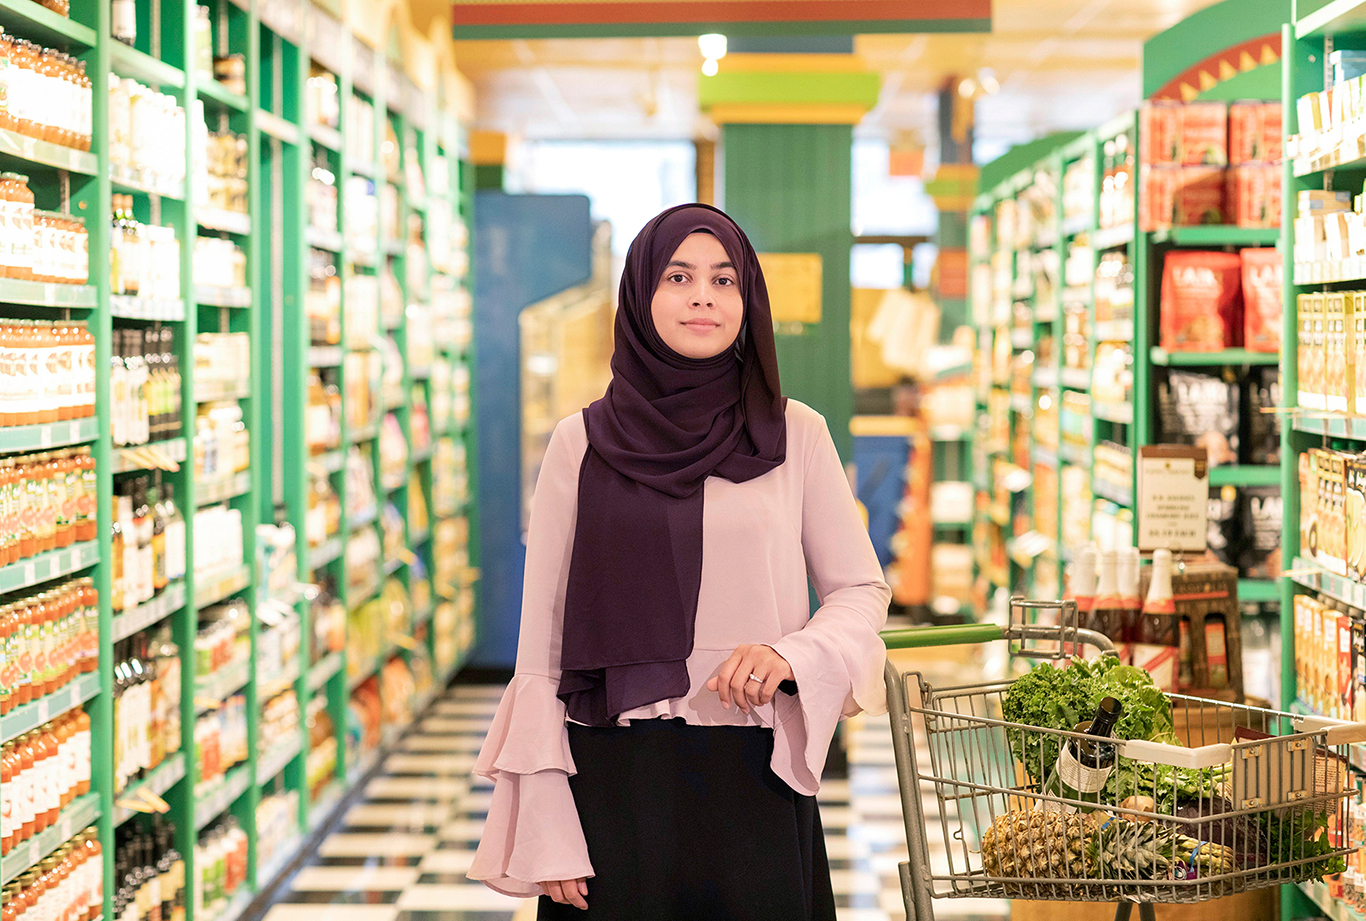 Nutritionist Nazima Qureshi shops at Planet Organic Market in Mississuaga. Photo by Alia Youssef